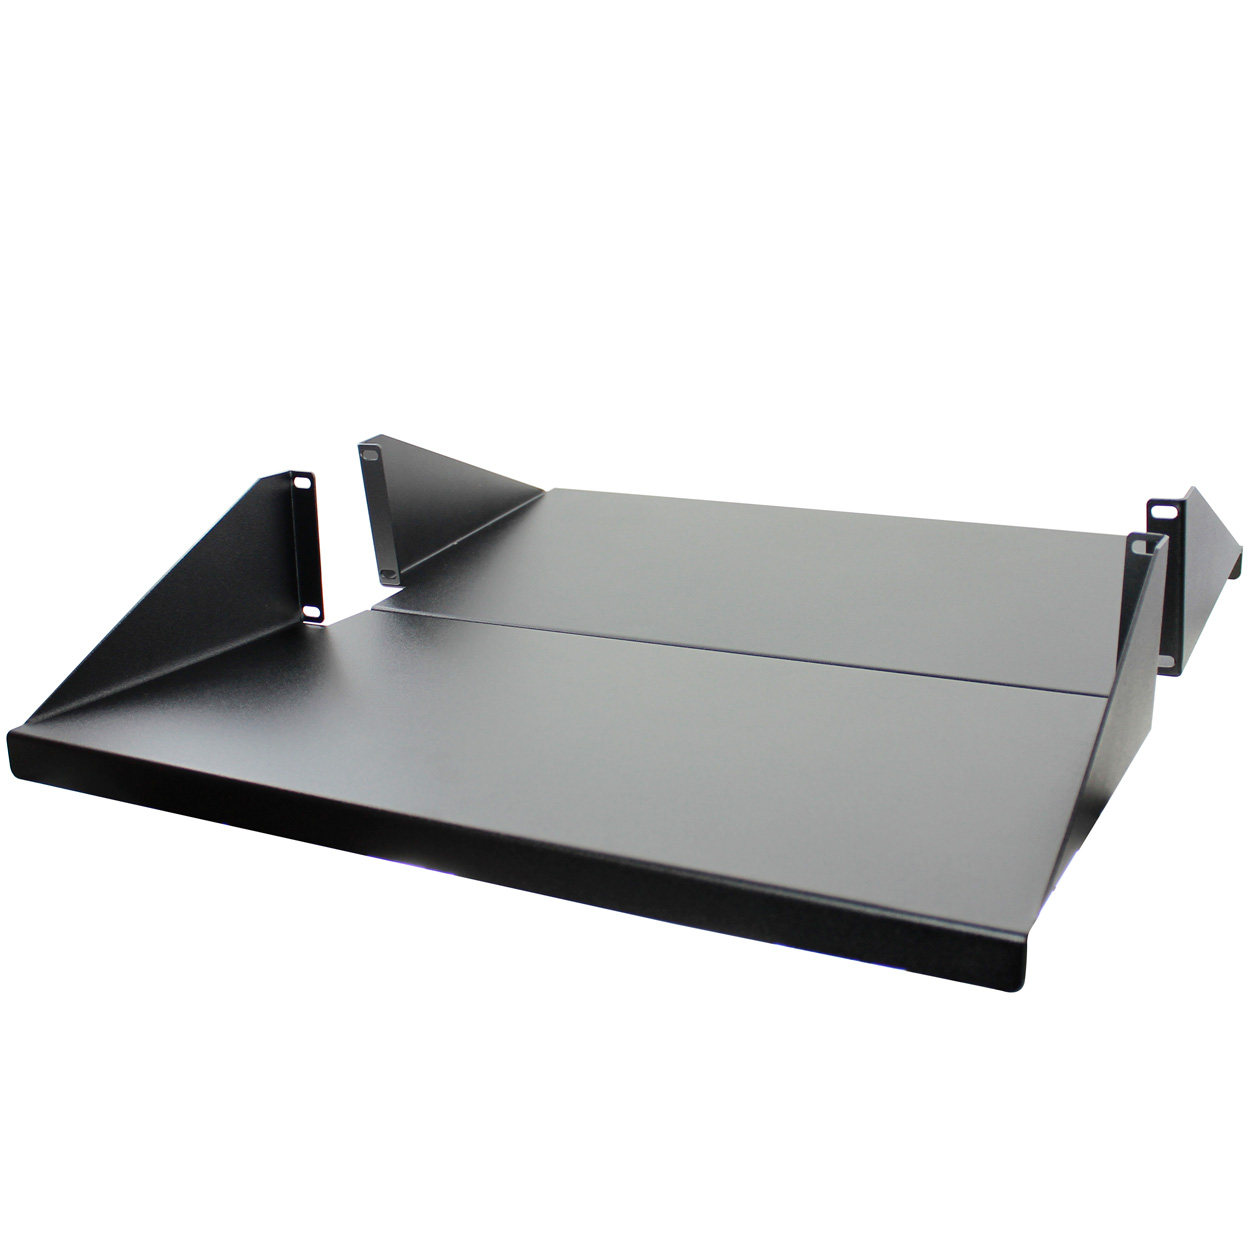 2U Heavy Duty Equipment Shelf for 19 inch Rackmount, Center Weight, 3.5